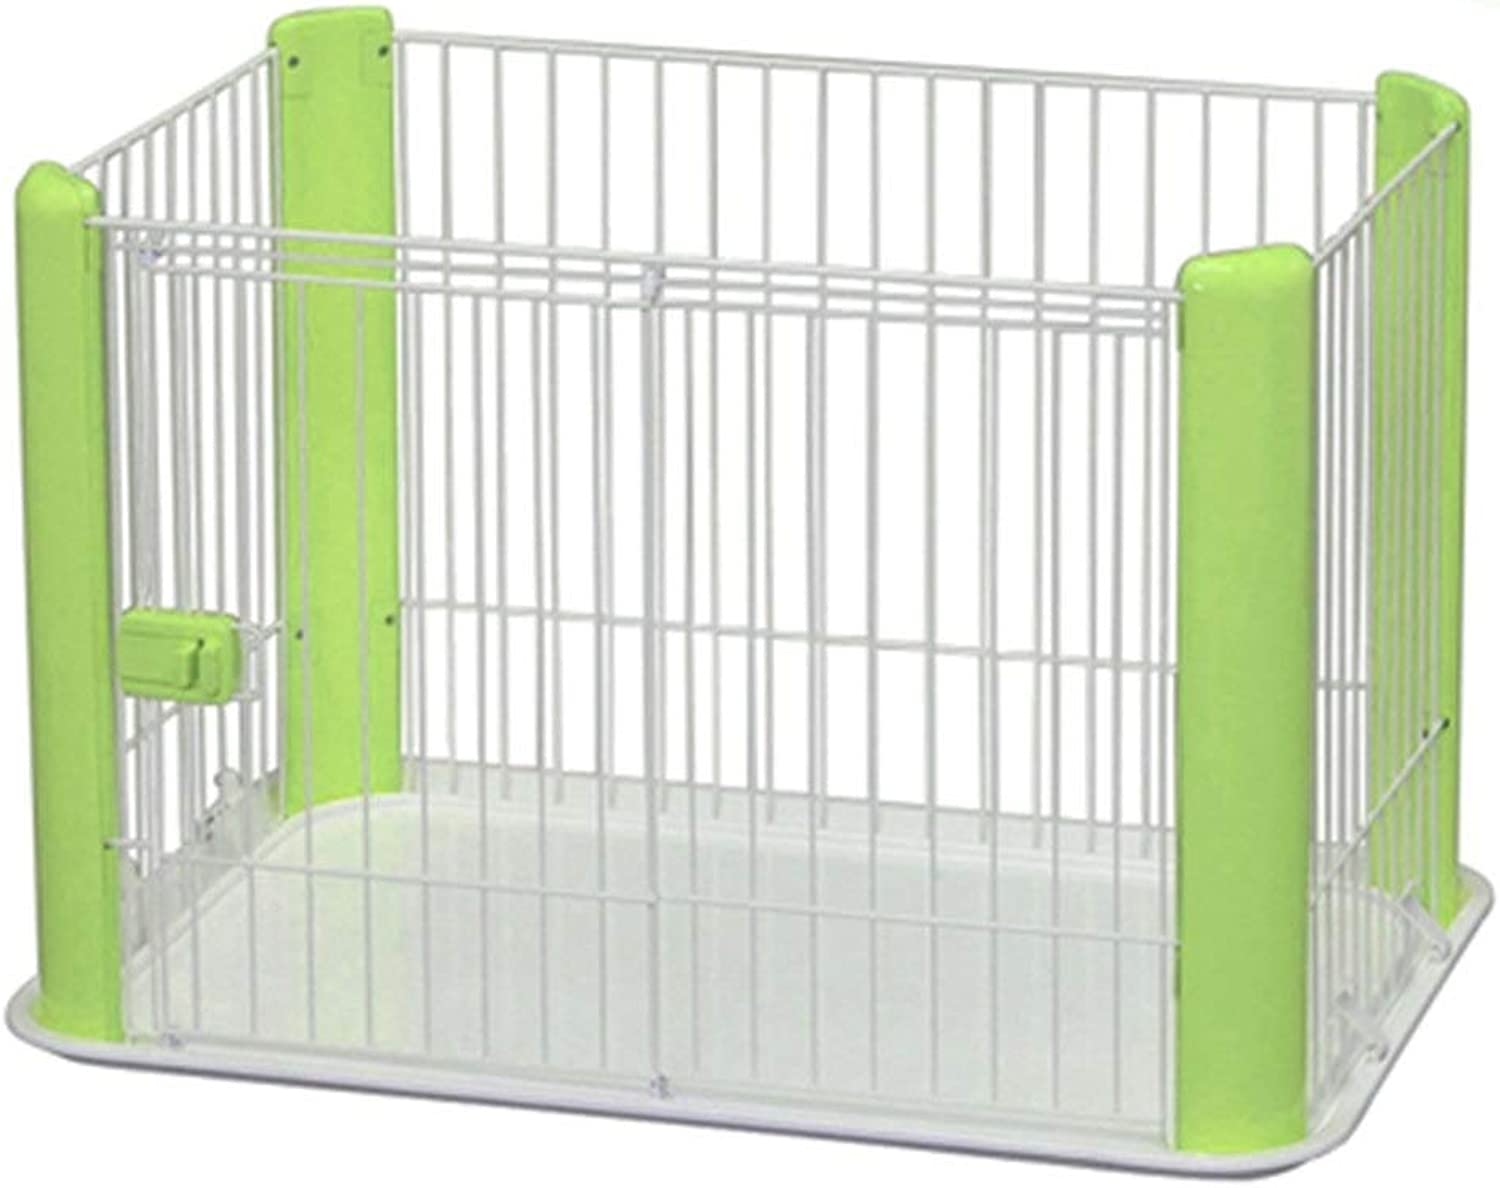 LJFYMX Puppy heavy puppy play pen Pet fence animal fence cage DIY practice pen box raise dog cage small animals, rabbits, rabbits, puppies and guinea pigs Puppy fence (color   Green)